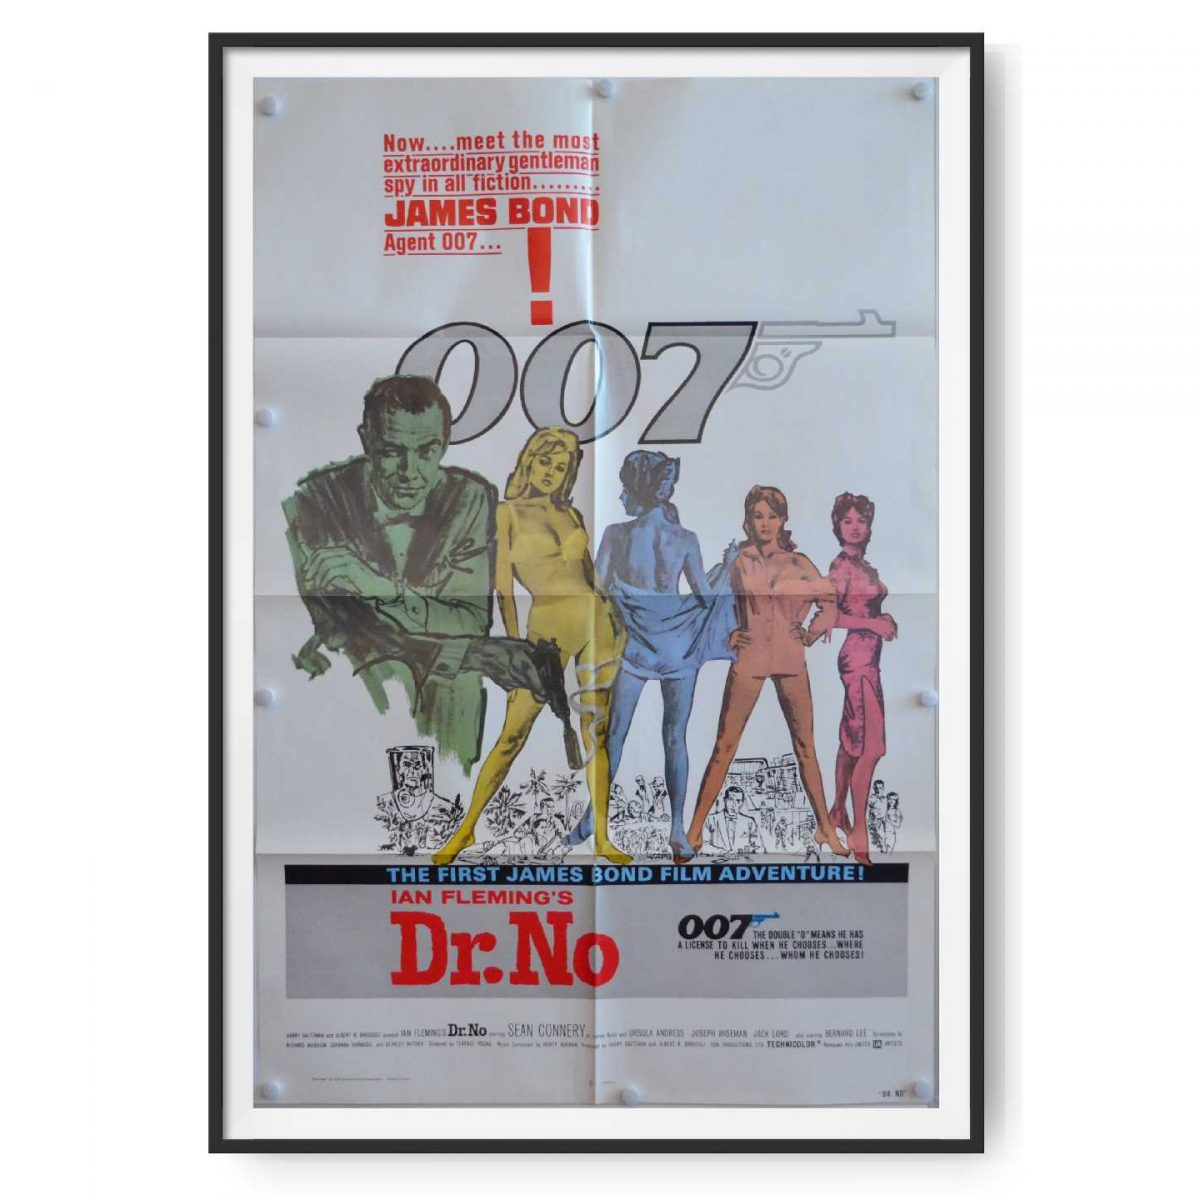 Picture shows an up close image of the US film poster for the BOnd movie Dr No